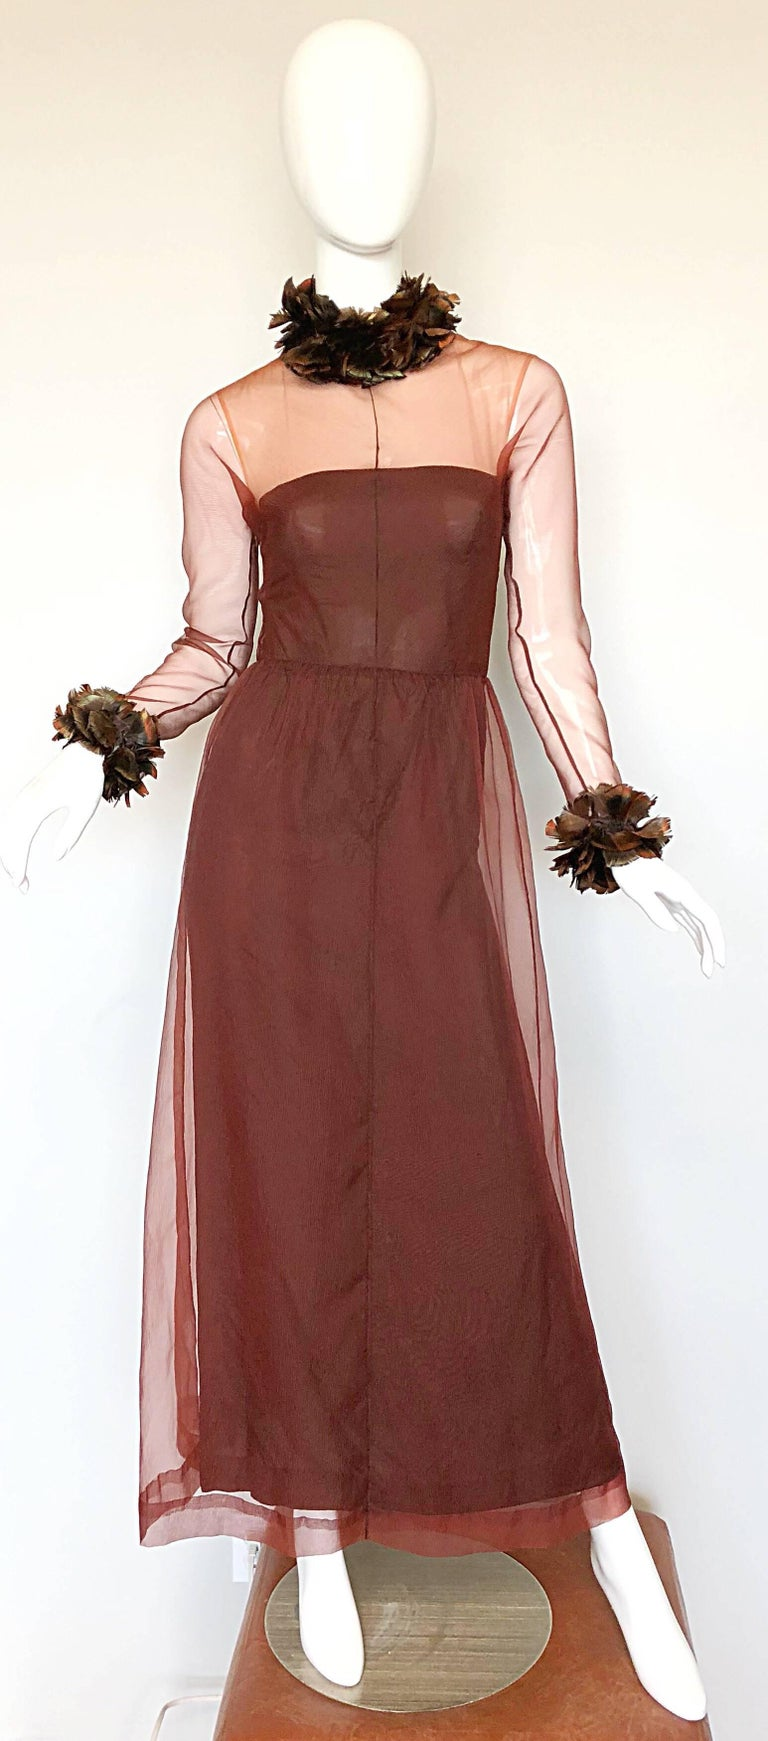 Amazing 60s GIVENCHY couture numbered chocolate brown silk chiffon evening dress! Features a nude illusion tailored bodice with semi sheer sleeves. Feathers around the full collar and sleeve cuffs. Full metal zipper up the back interior, and the